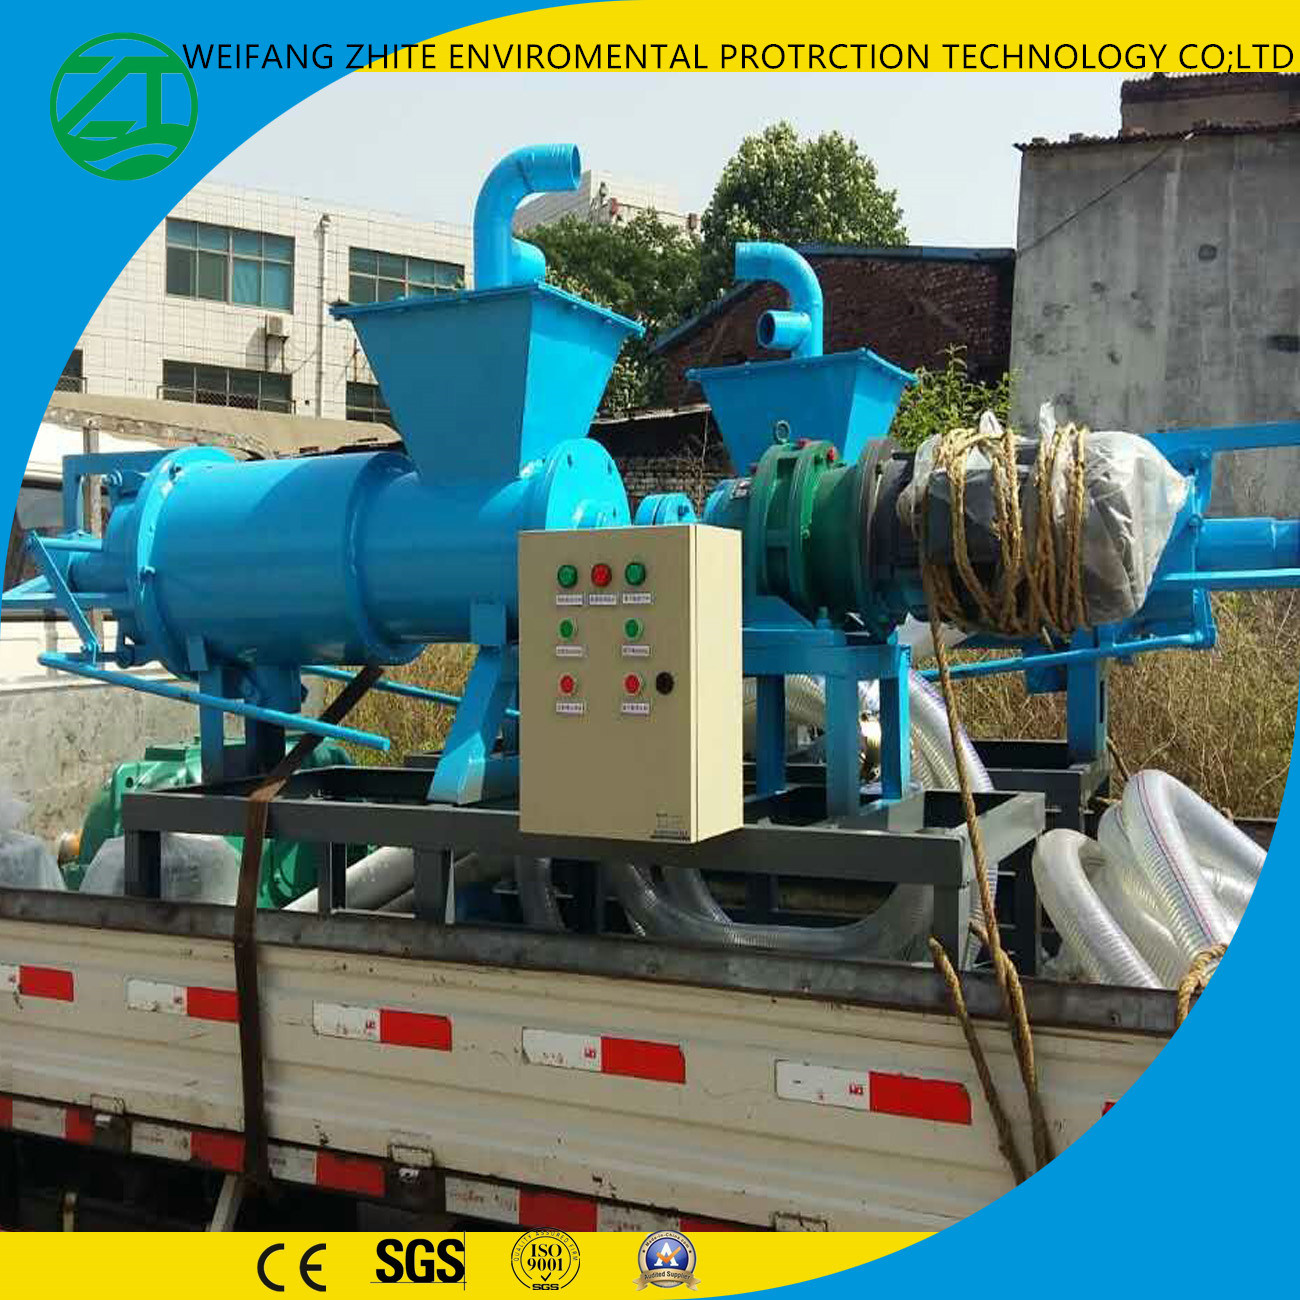 Dewater Screw Press Machine/Cow/Pig/Chicken/Cattle Dung Waste Spiral Solid Liquid Separator